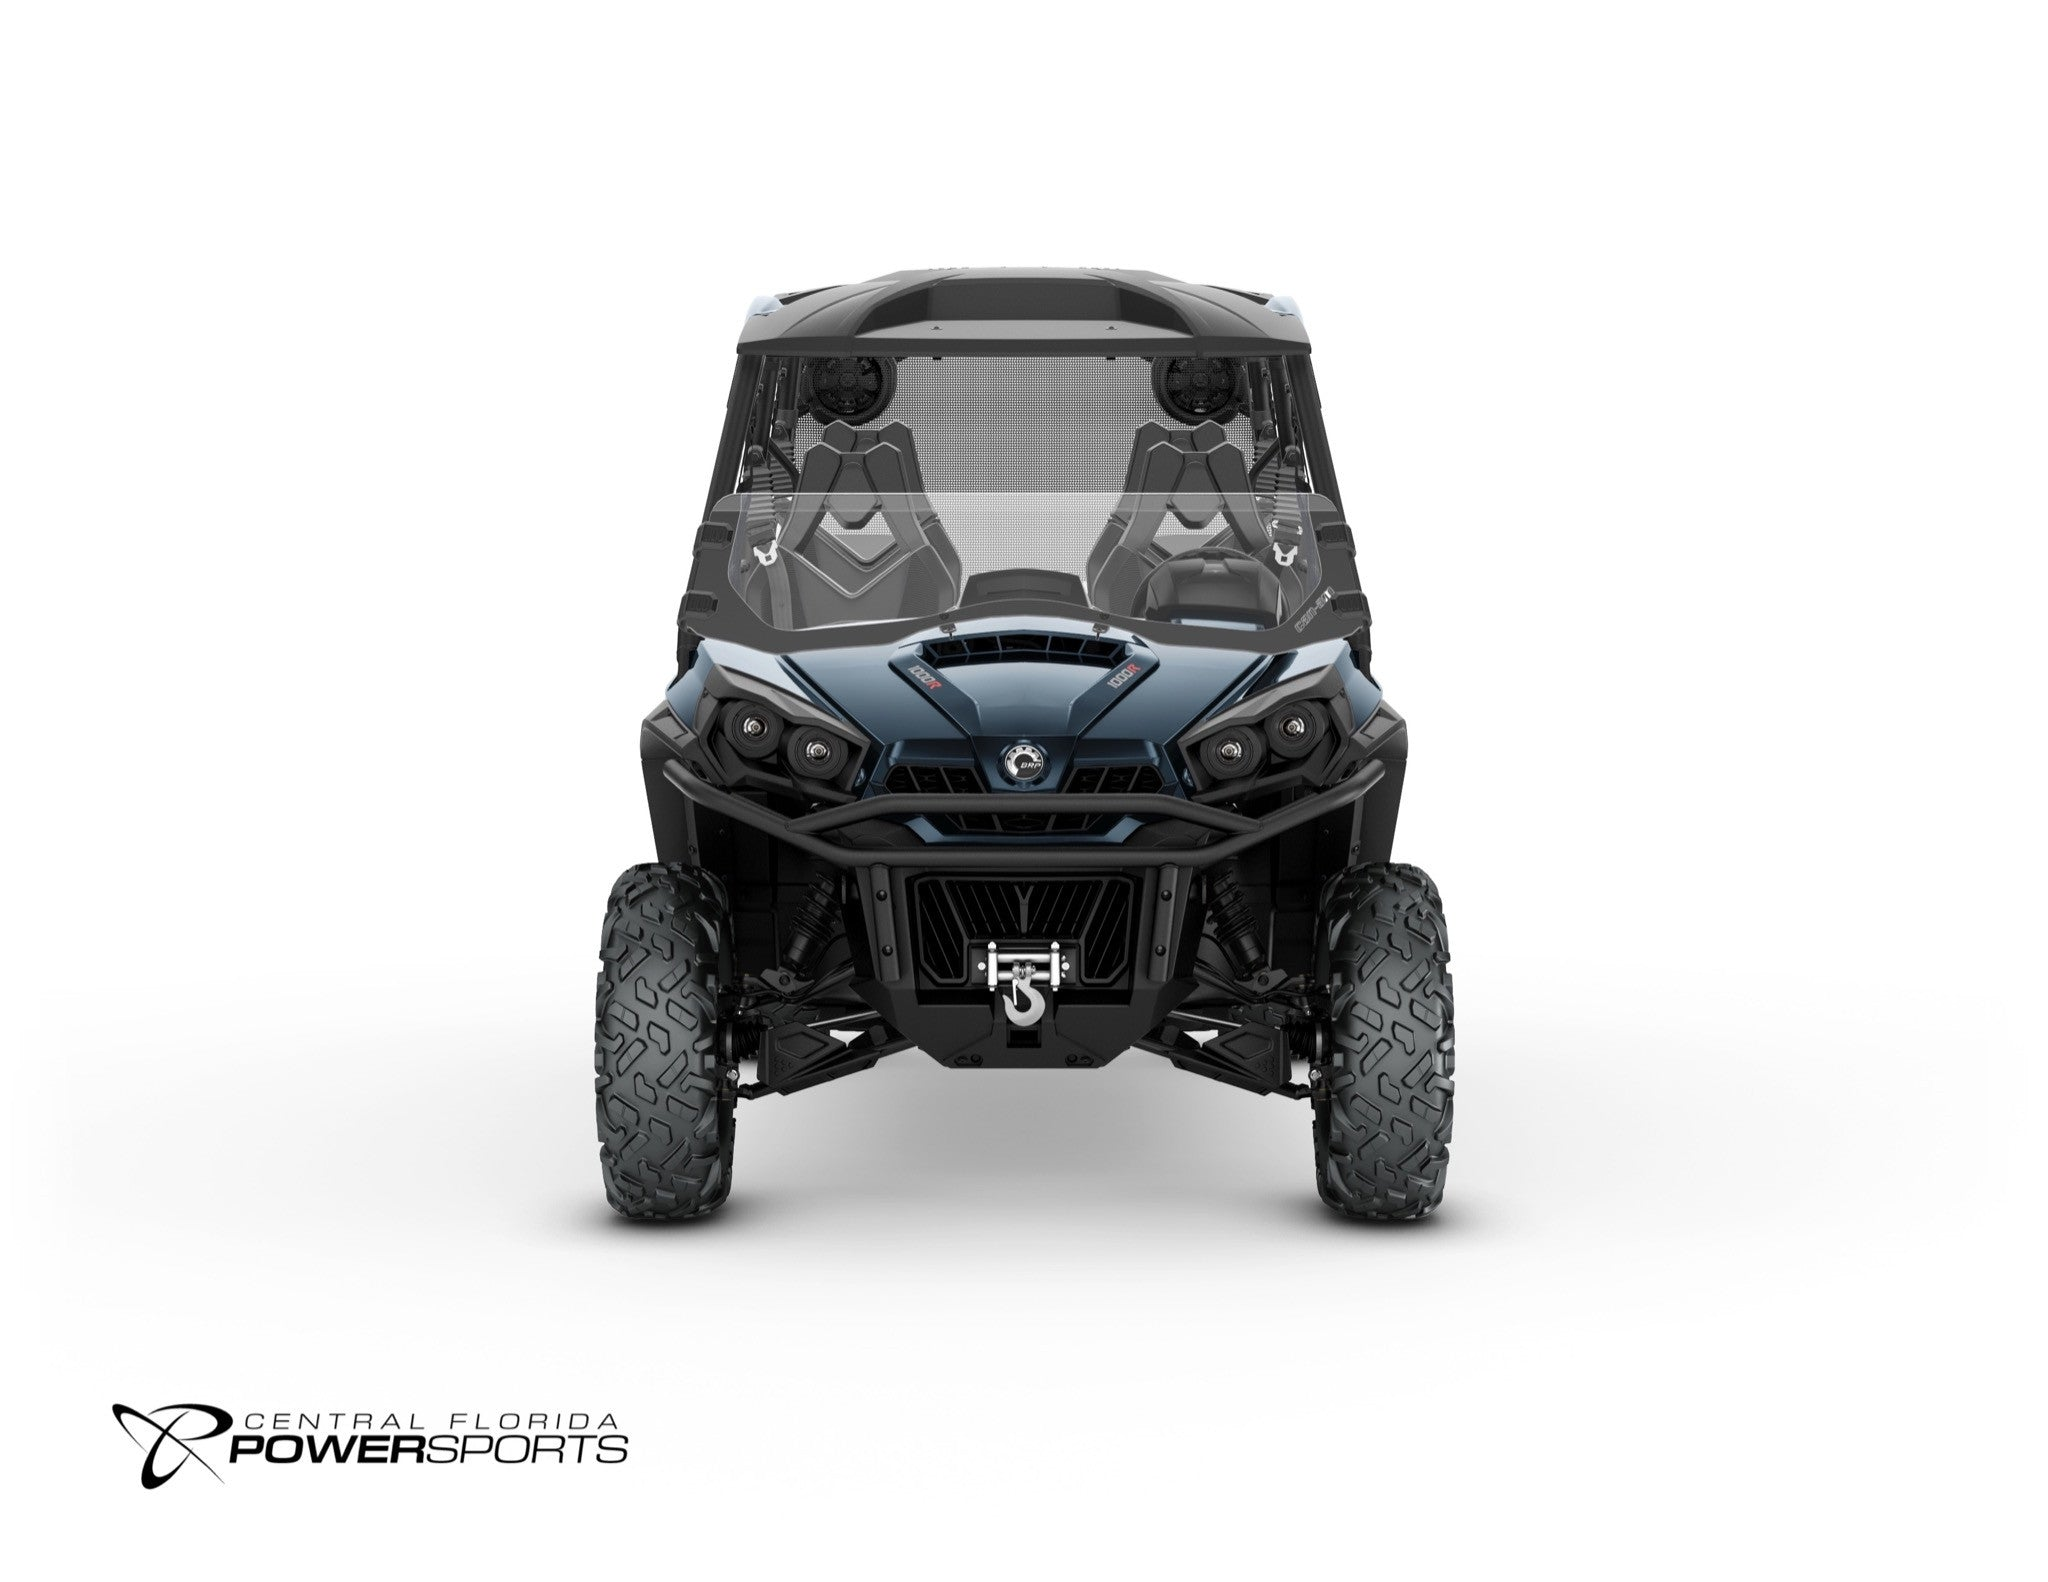 2018 Canam Commander Max Limited Central Florida Powersports